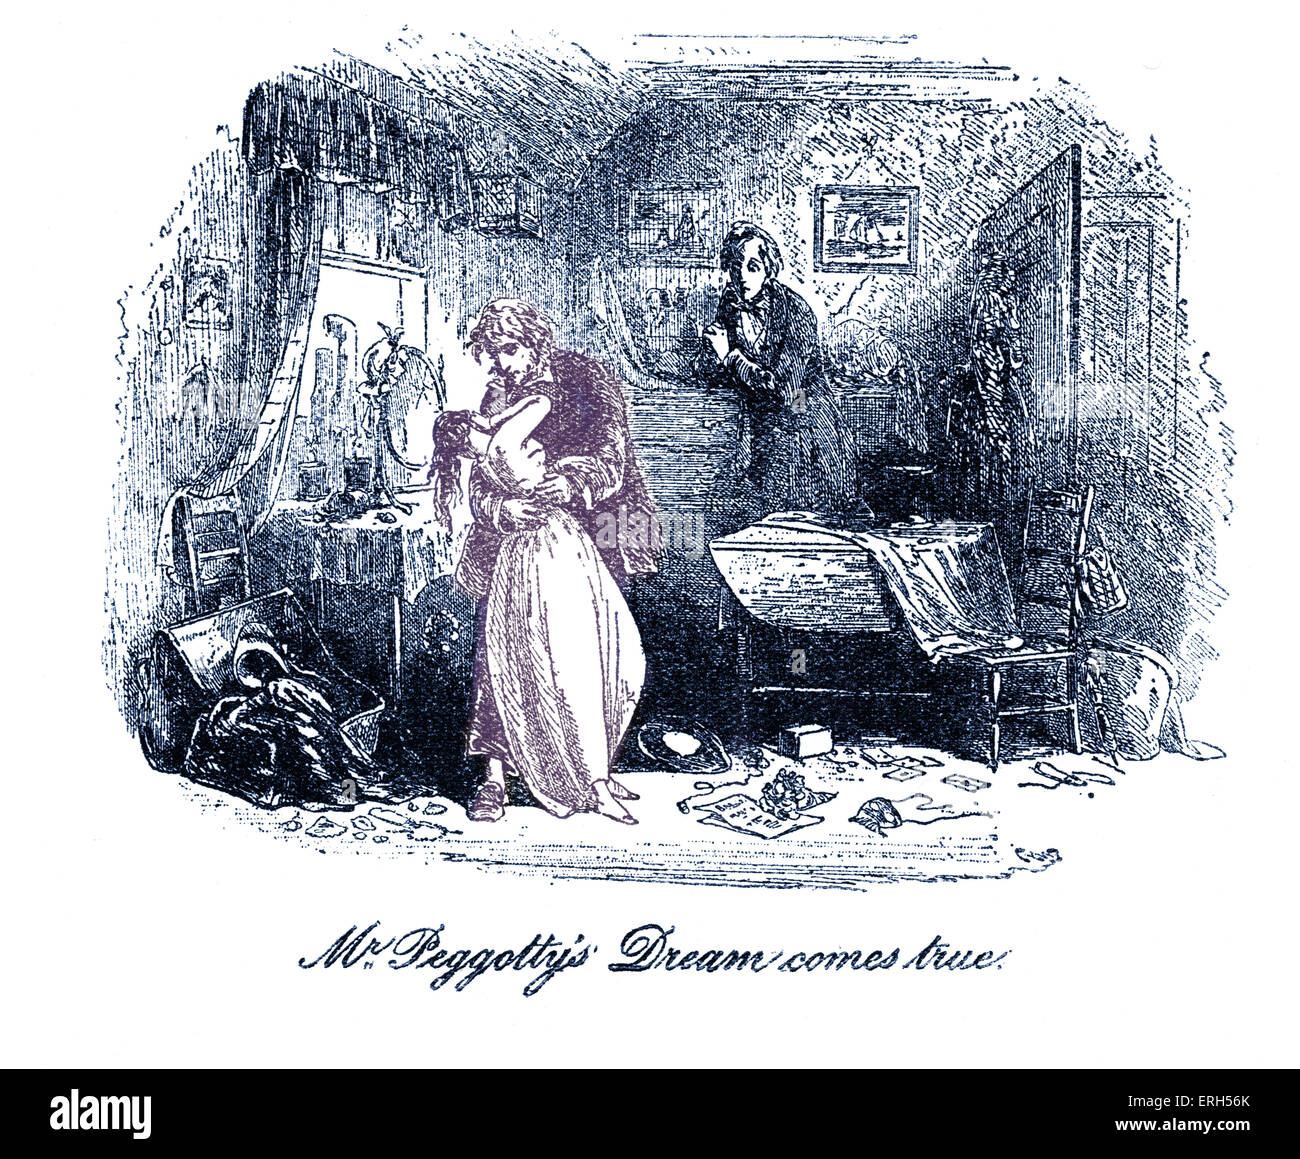 david copperfield by charles dickens illustration by phiz hablot david copperfield by charles dickens illustration by phiz hablot knight browne caption reads mr peggotty s dream comes